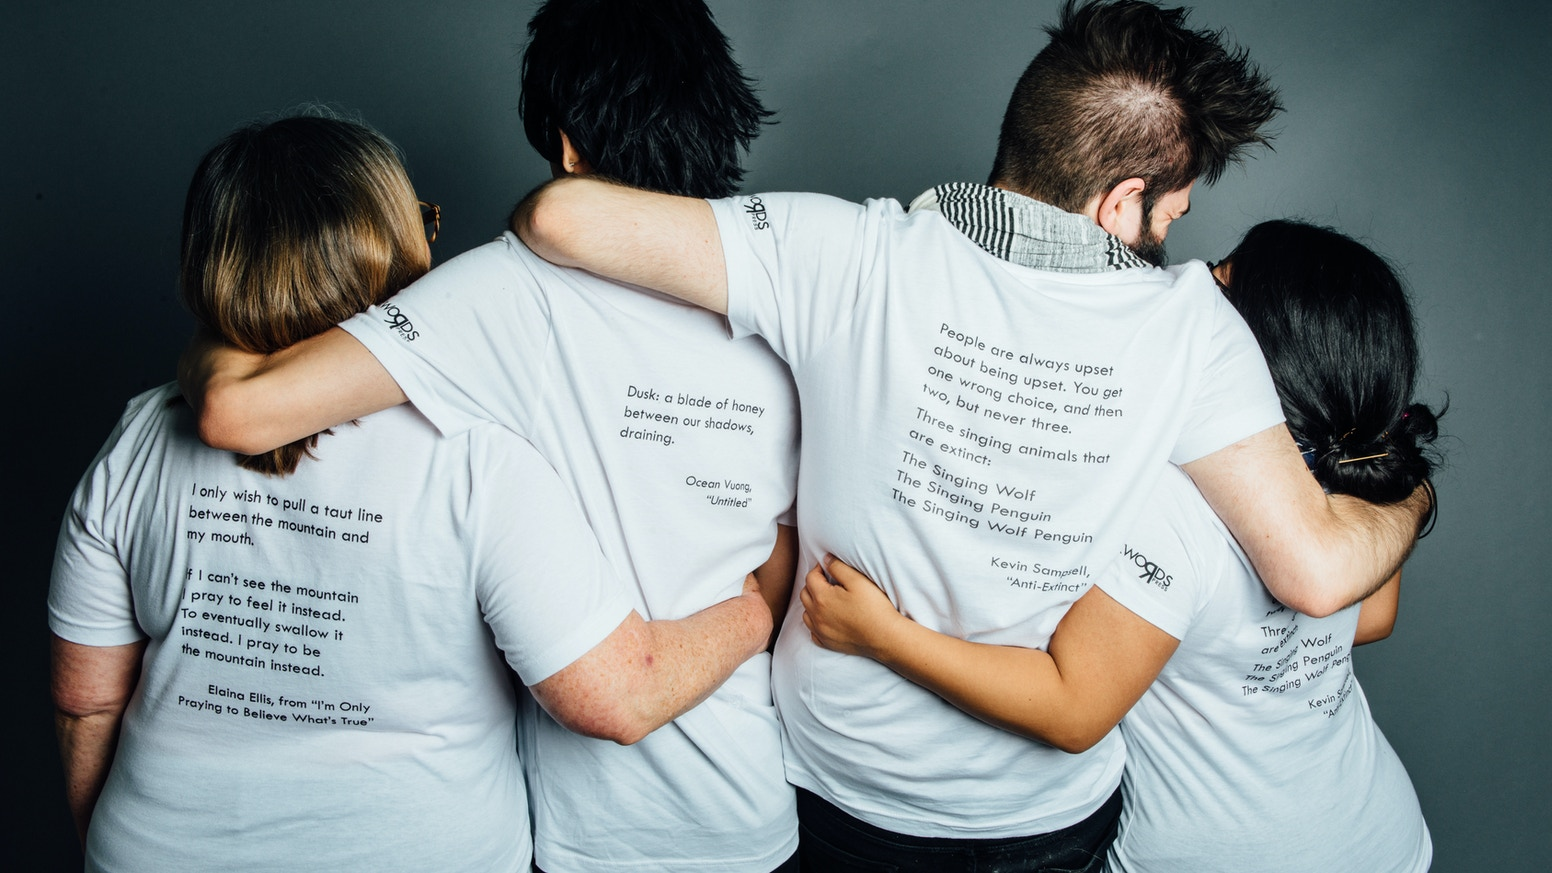 BACKWORDS Press: your favorite t-shirt as art, featuring more engaging words, and supporting more writers.